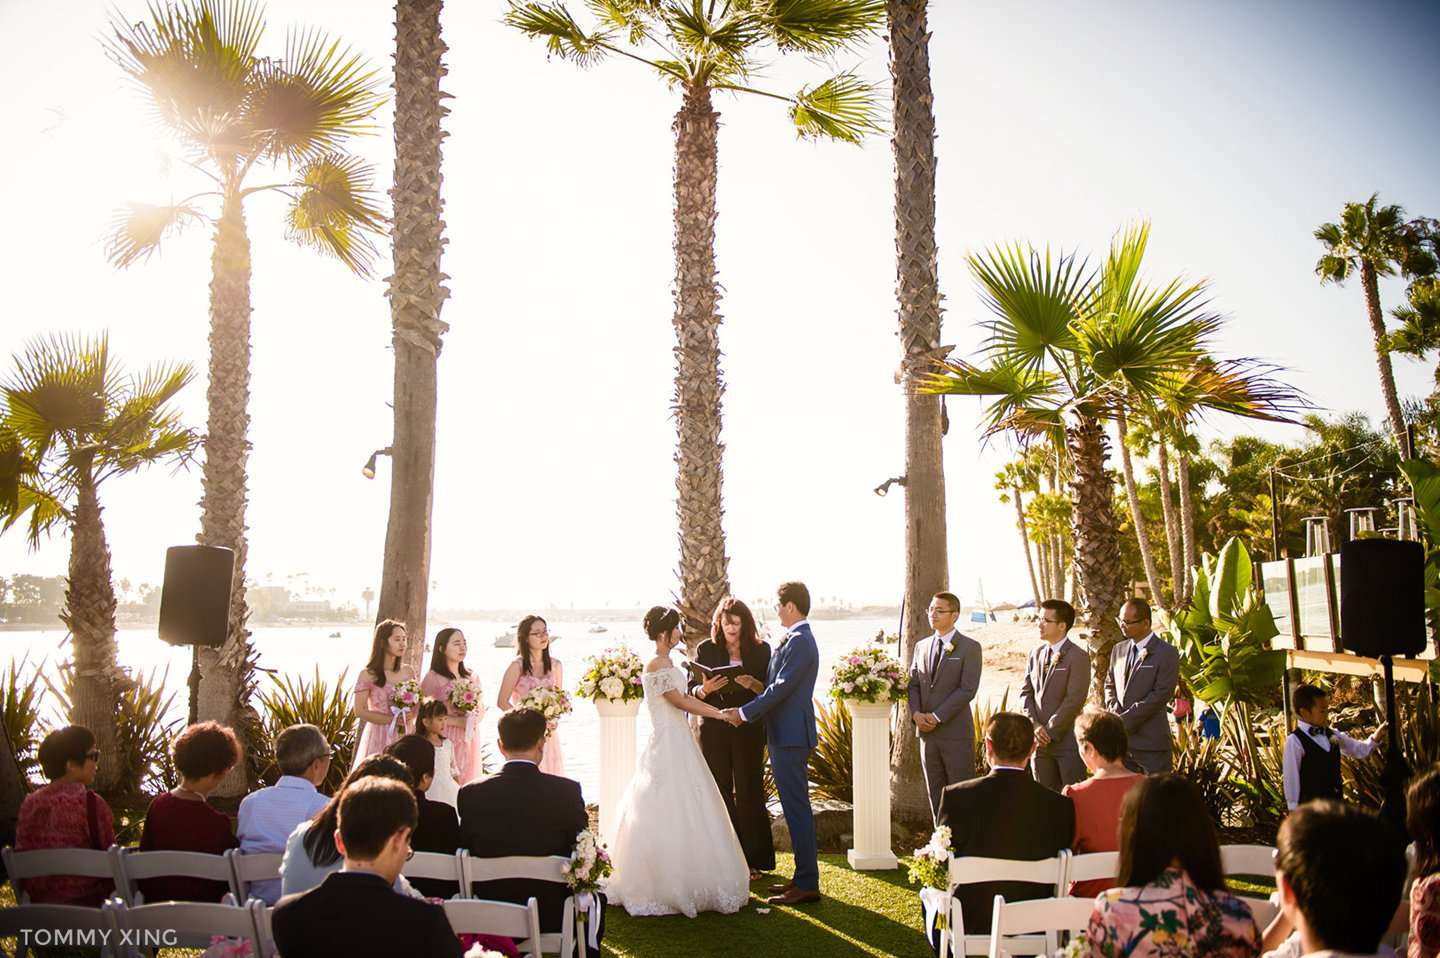 Paradise Point Resort Wedding Xiaolu & Bin San Diego 圣地亚哥婚礼摄影跟拍 Tommy Xing Photography 洛杉矶婚礼婚纱照摄影师 160.jpg